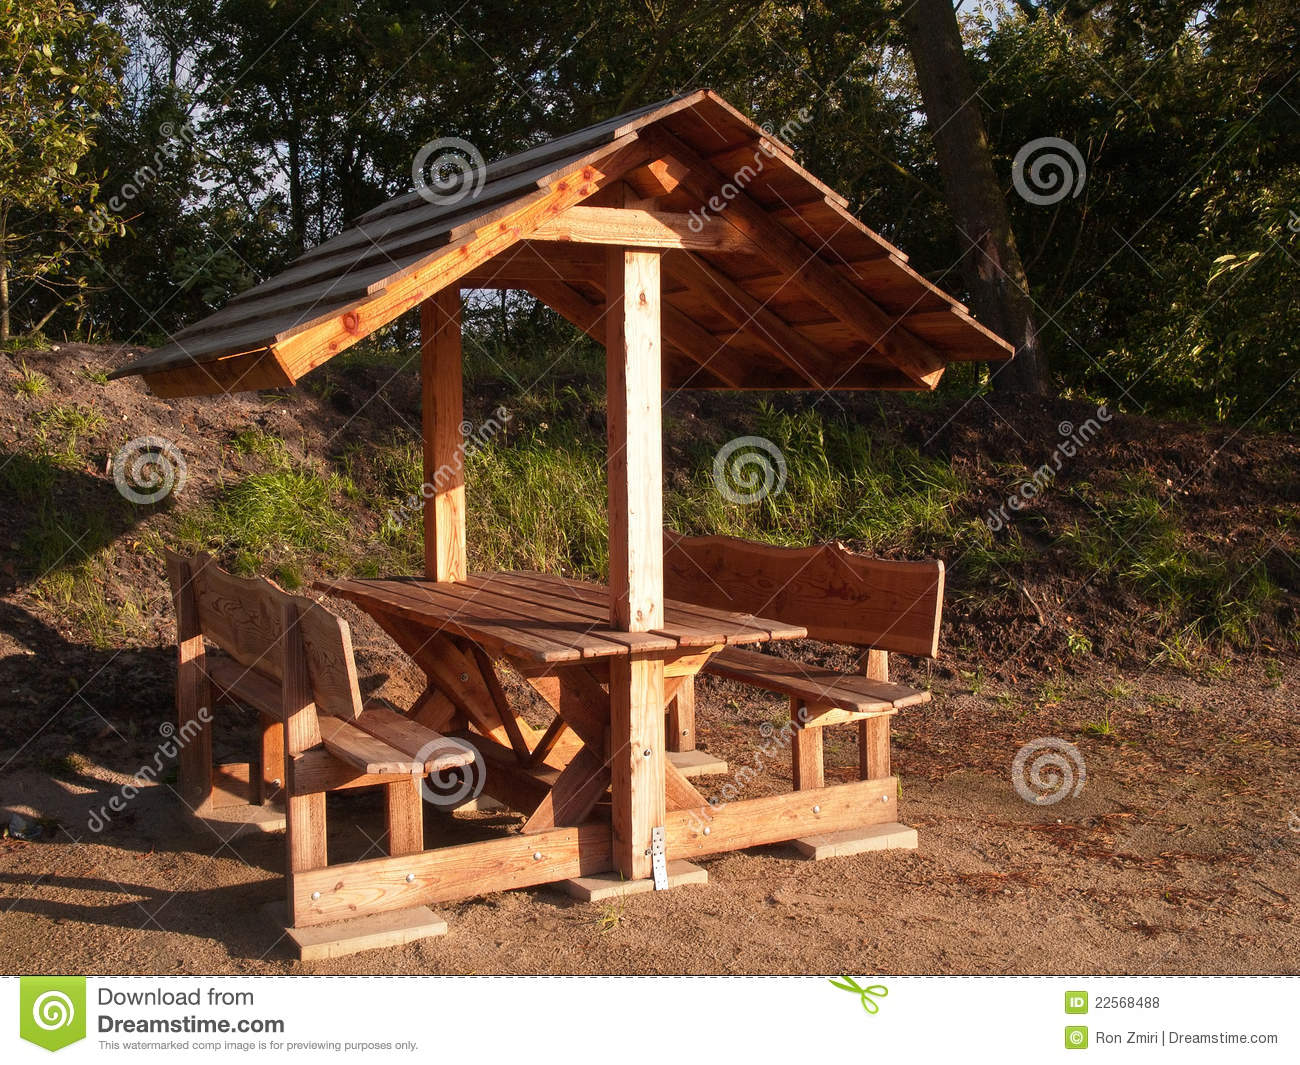 plans for a wooden picnic table | Art of Woodworking